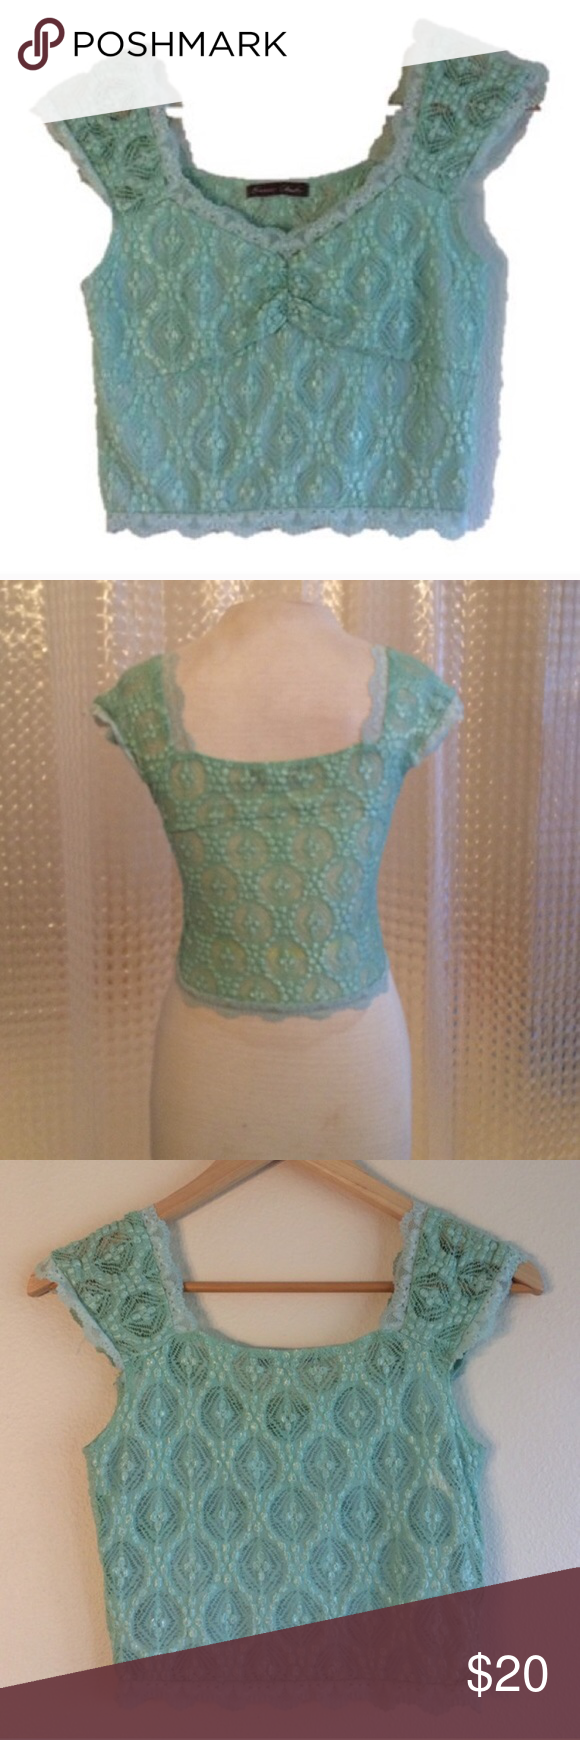 Powder blue lace crop top NWOT This adorable crop top is Size small/xs. Liner in front of shirt but not back. Lace detail sleeves Have questions on the size? Ask! I'm happy to provide all measurements! NO TRADES! Fast shipping! No swaps! Tops Crop Tops